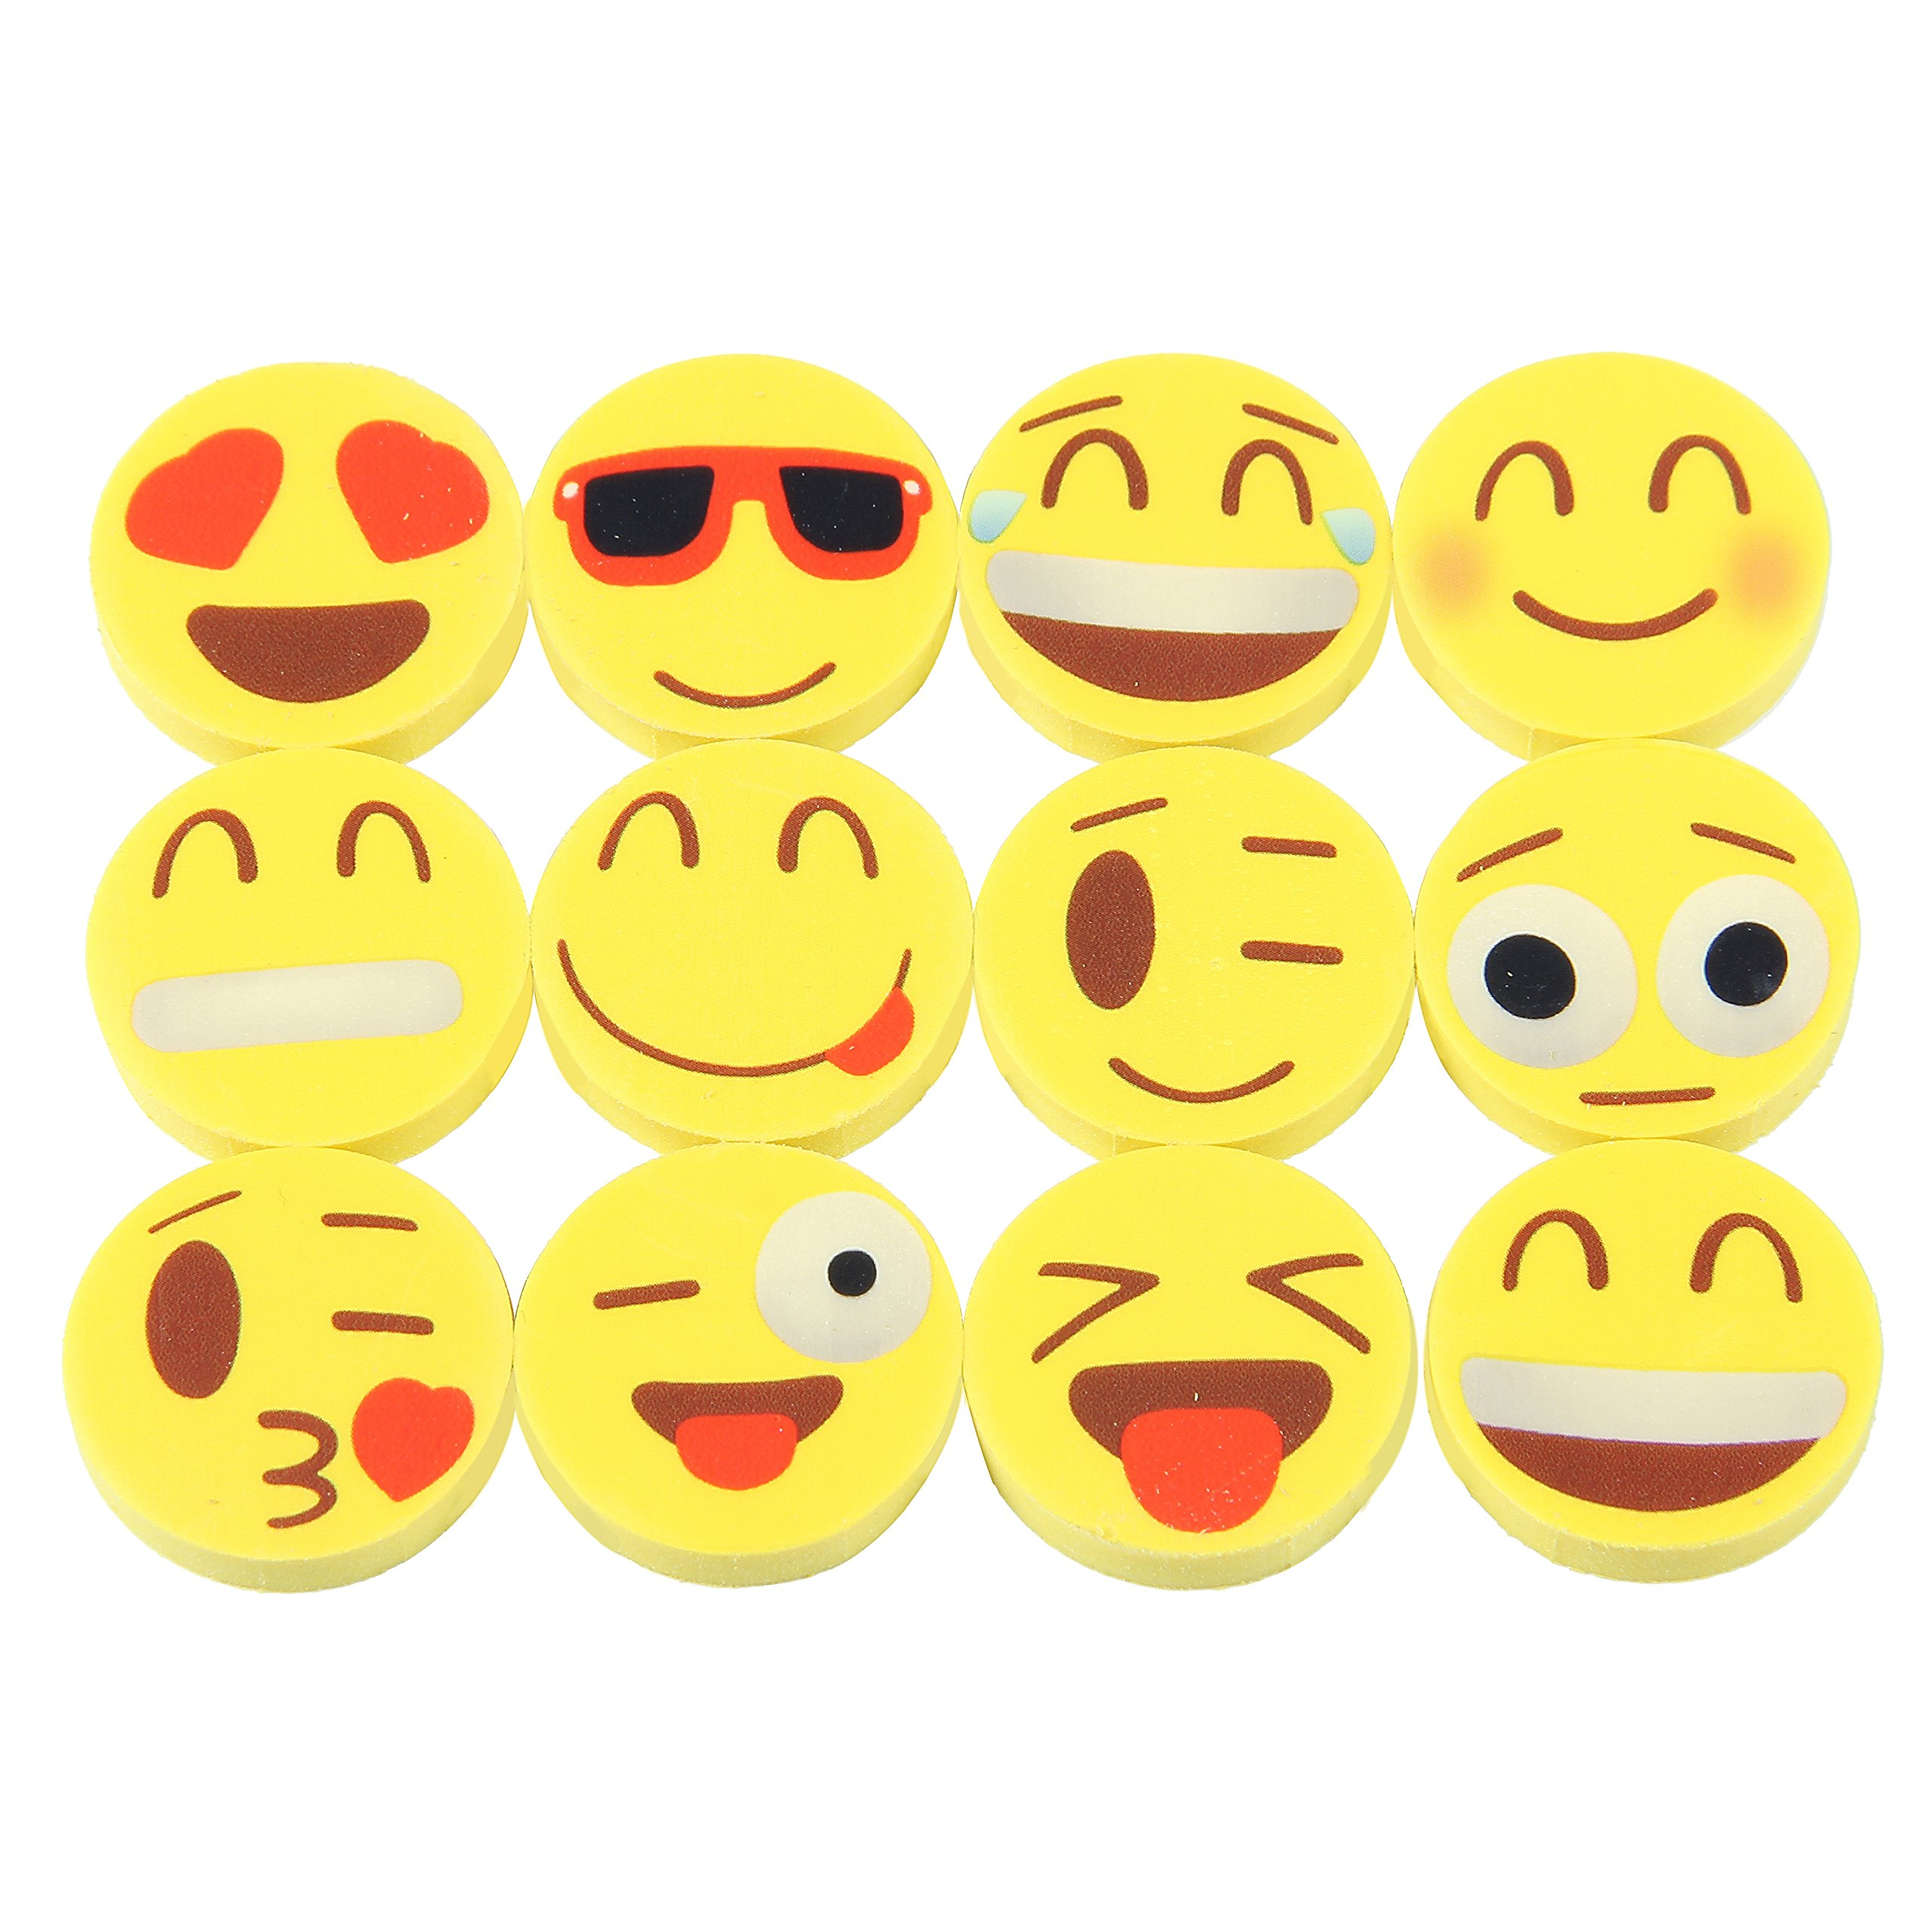 144 Novelty Cute Emoji Erasers - Fun School Supplies - Colorful Expressions Kids Will Love Materials Won't Smudge or Tear Paper - Ideal for Homework Rewards and Kids Party Favors